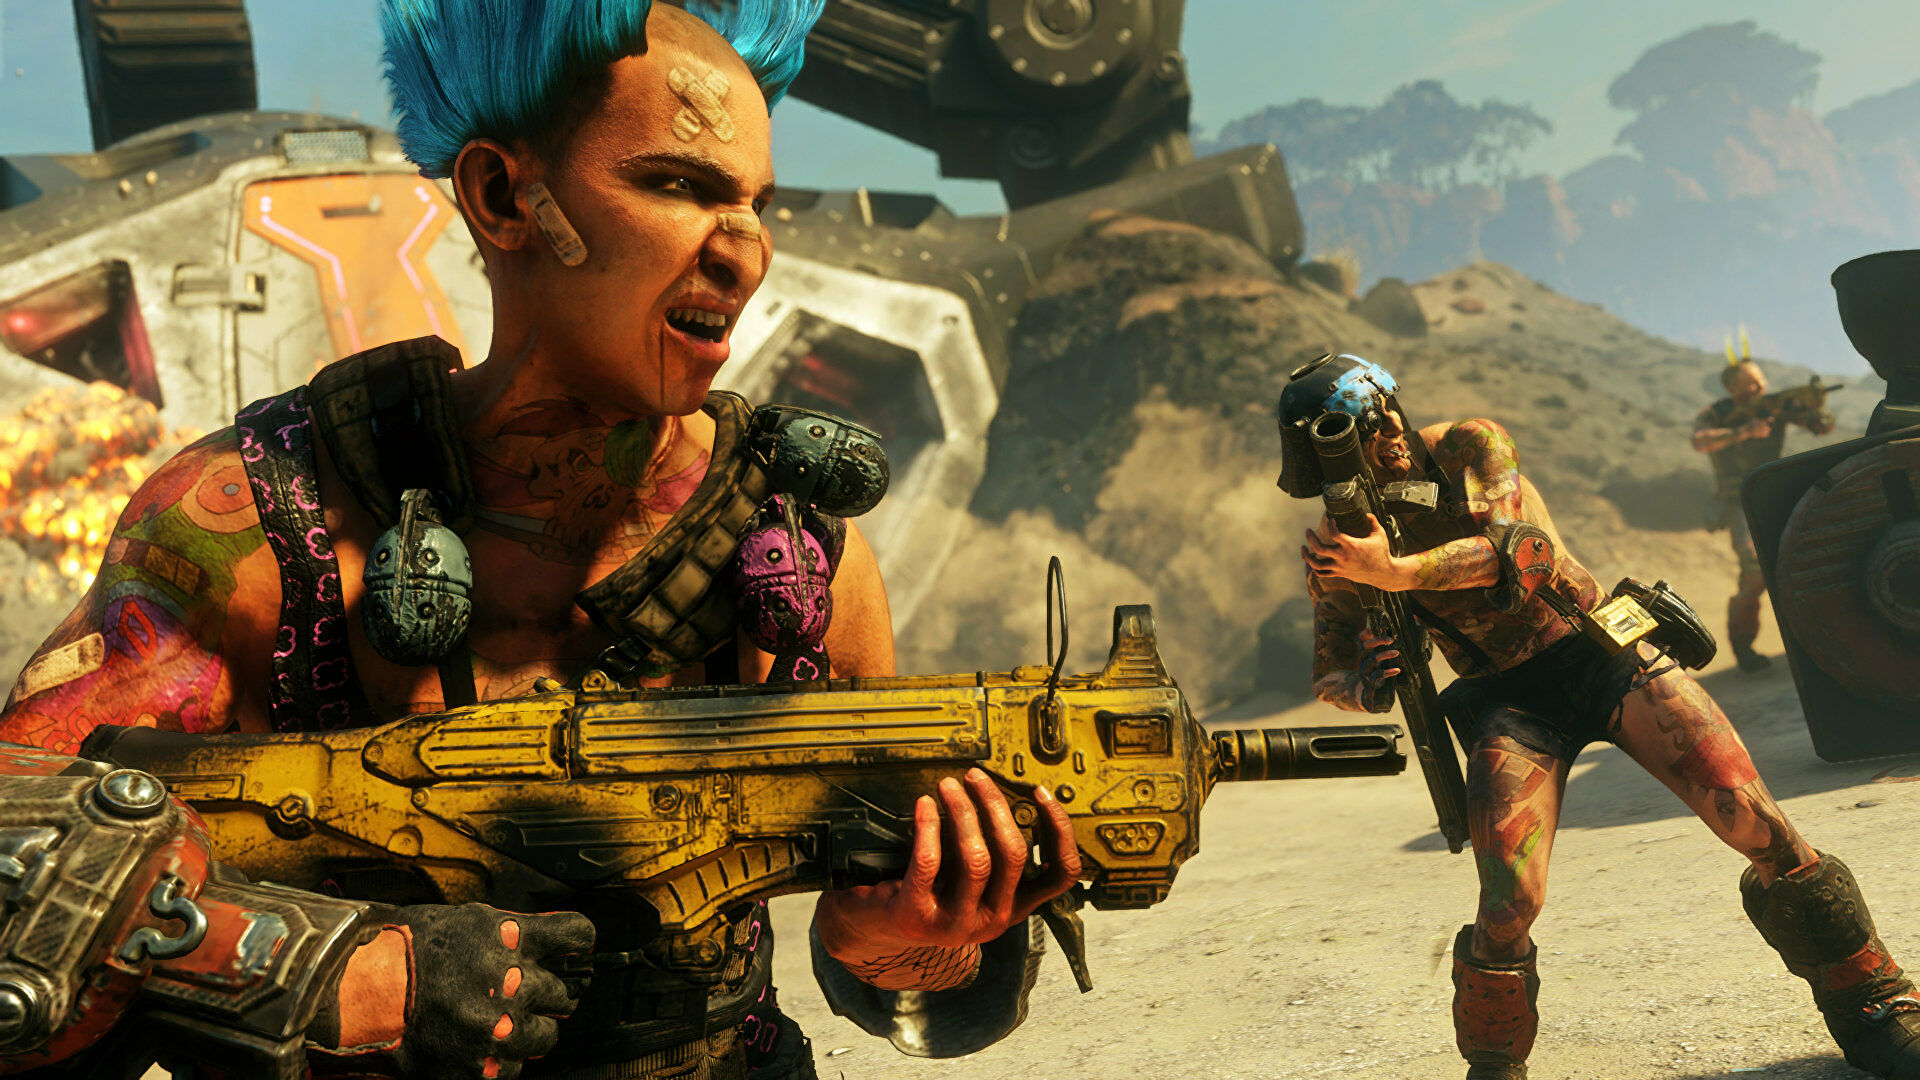 Rage 2 is free to keep via the Epic Games Store this week